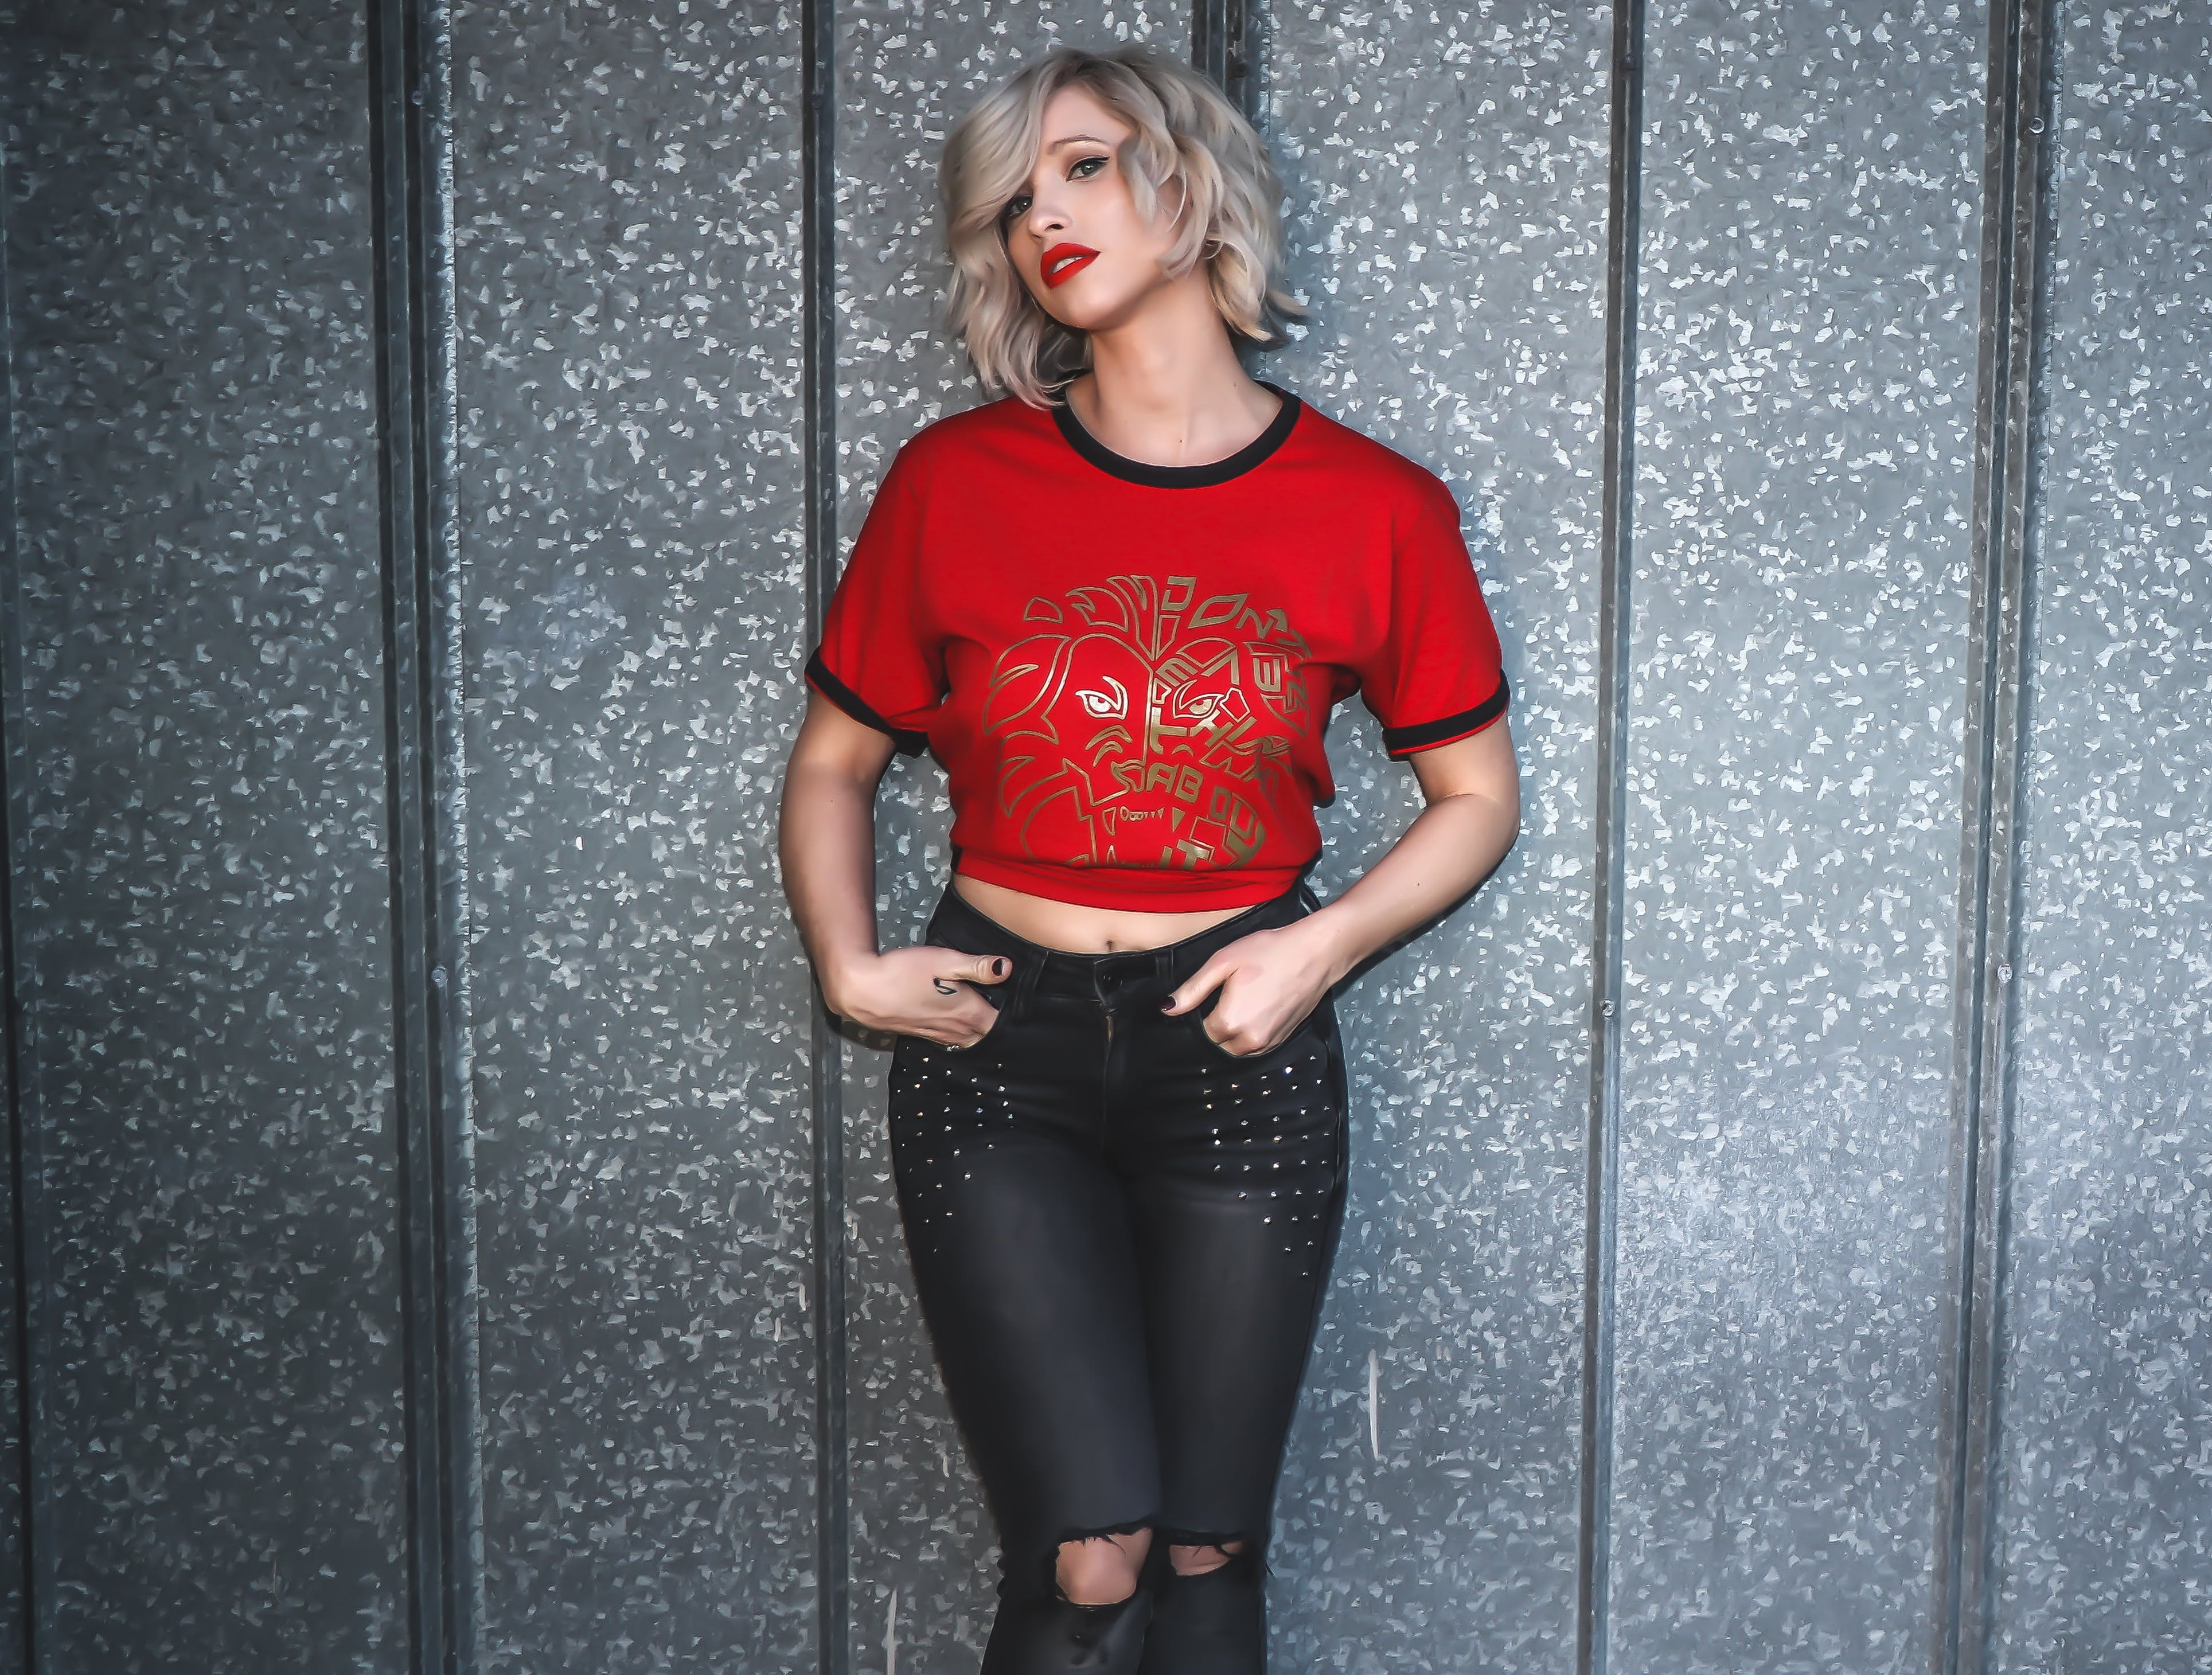 Woman in Red Crew-neck T-shirt